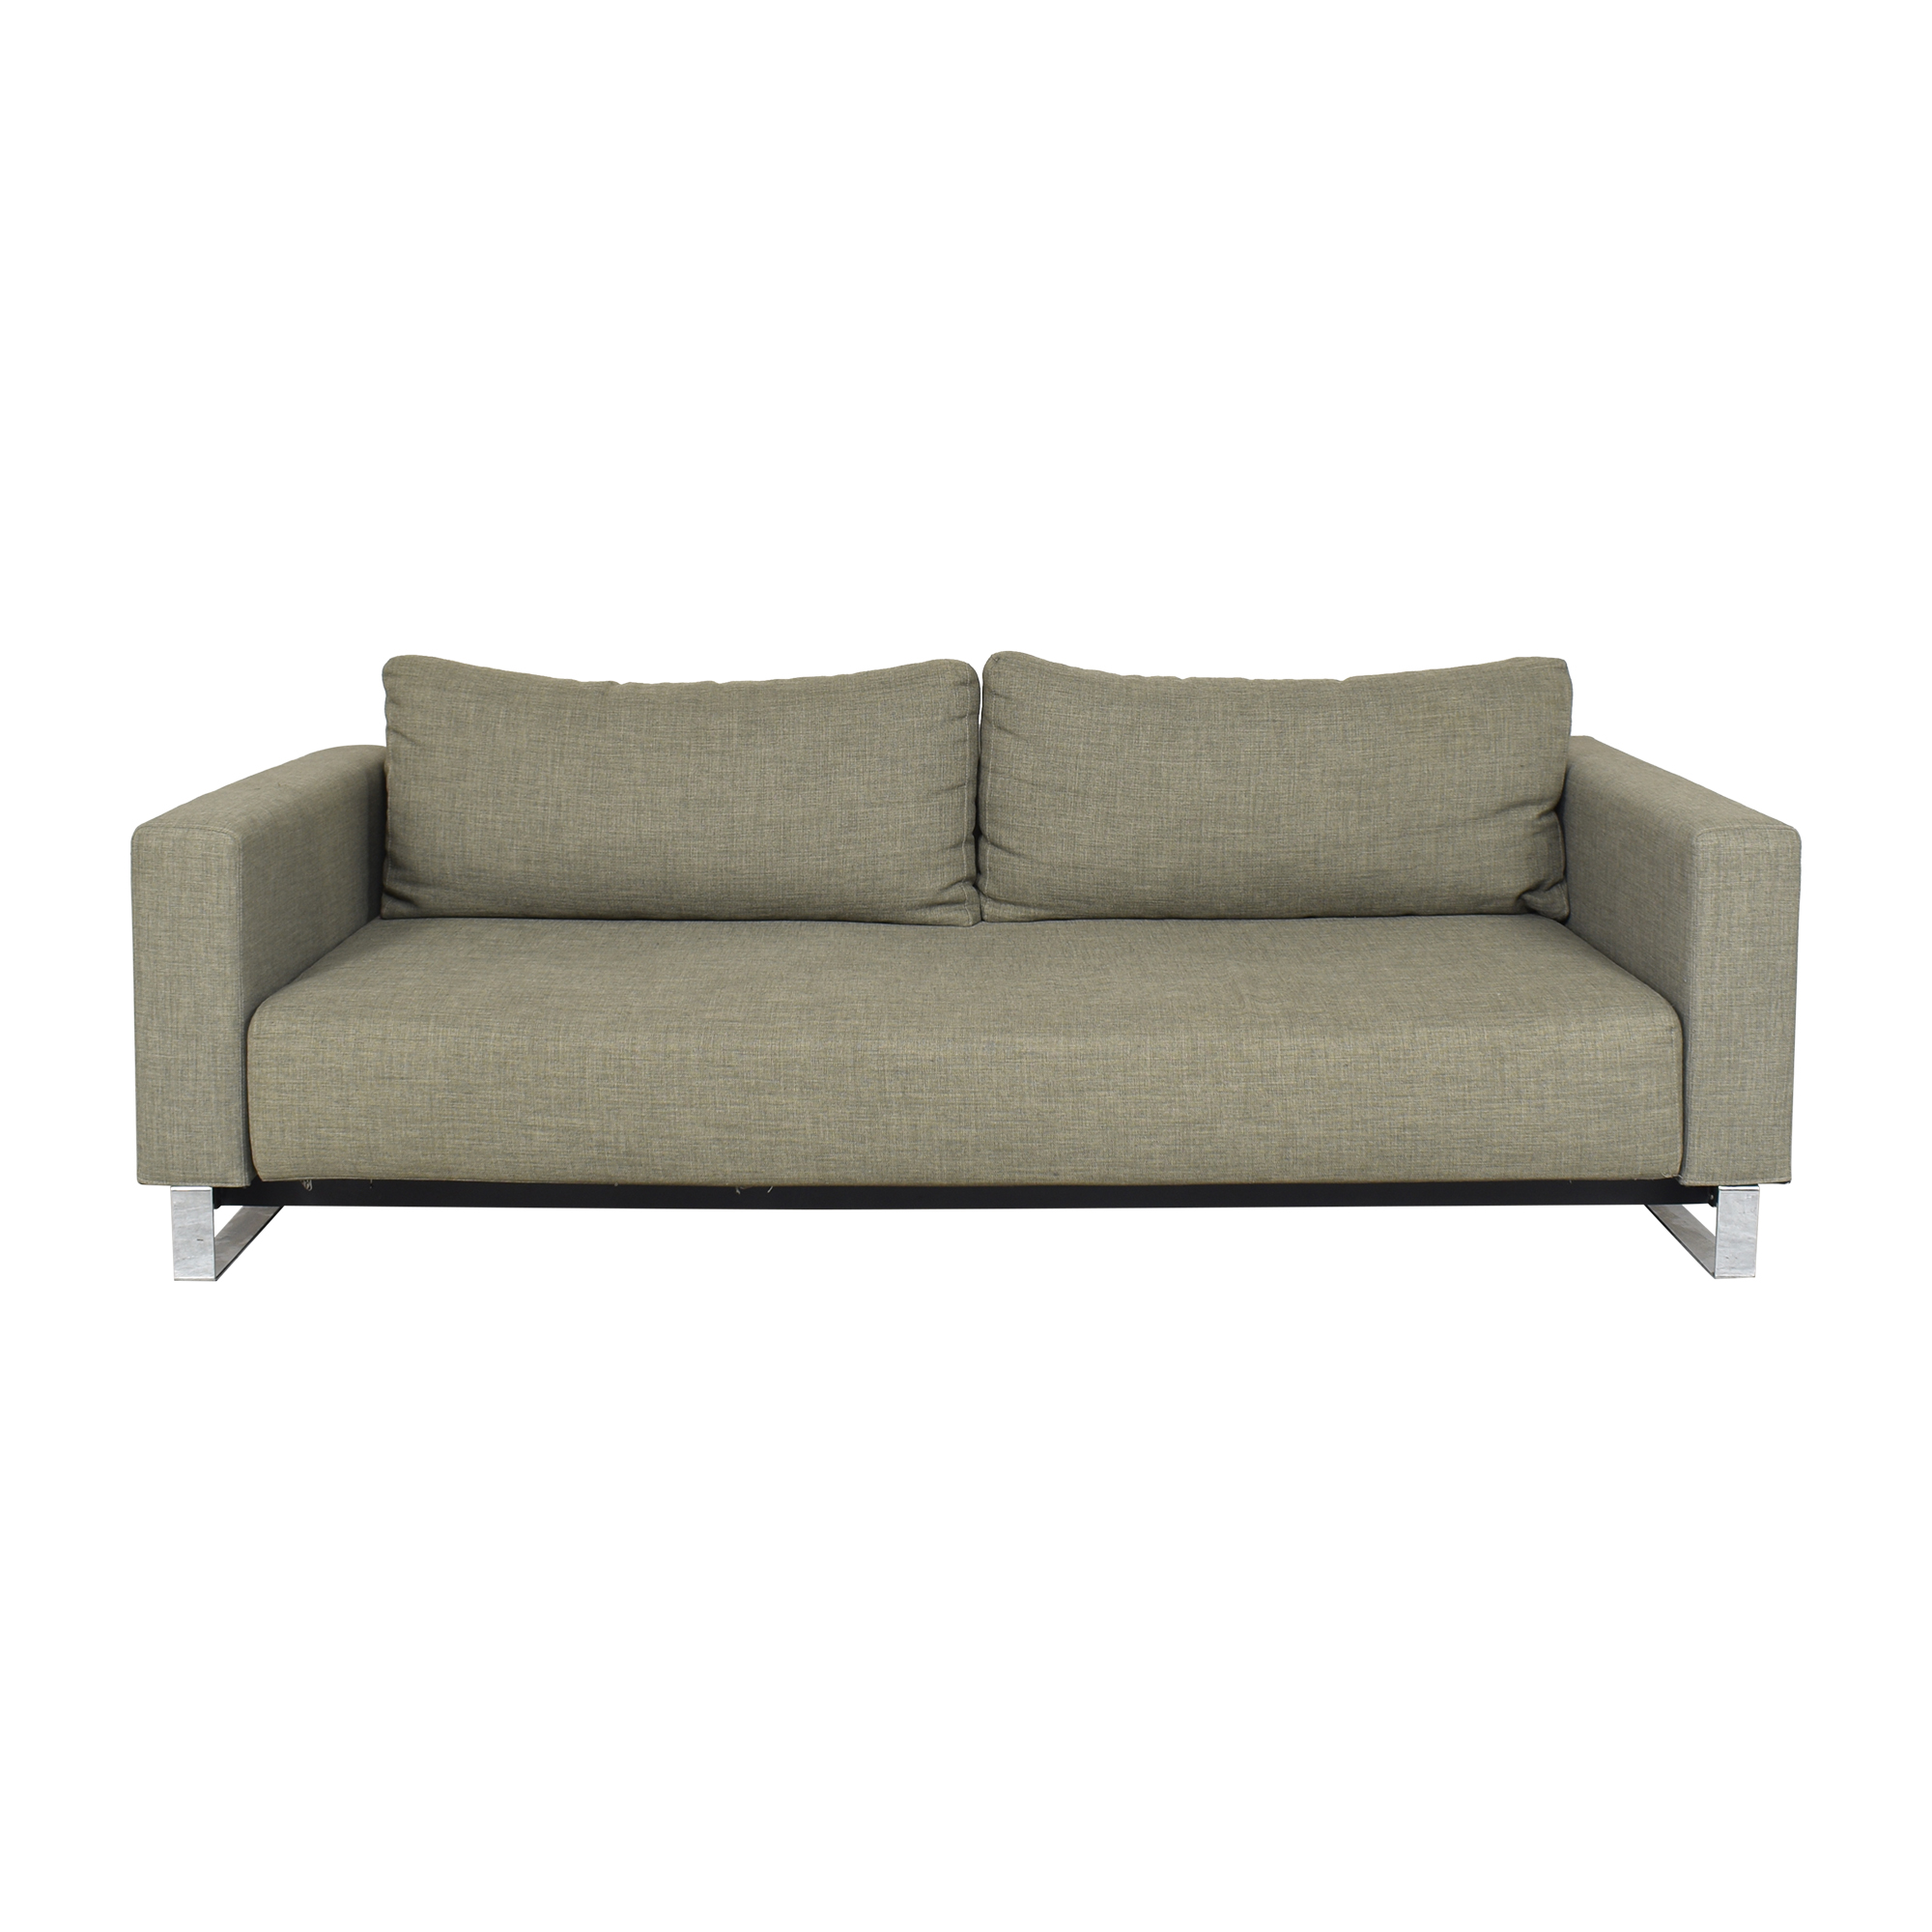 Innovation Living Innovation Living Cassius D.E.L. Sofa Bed discount